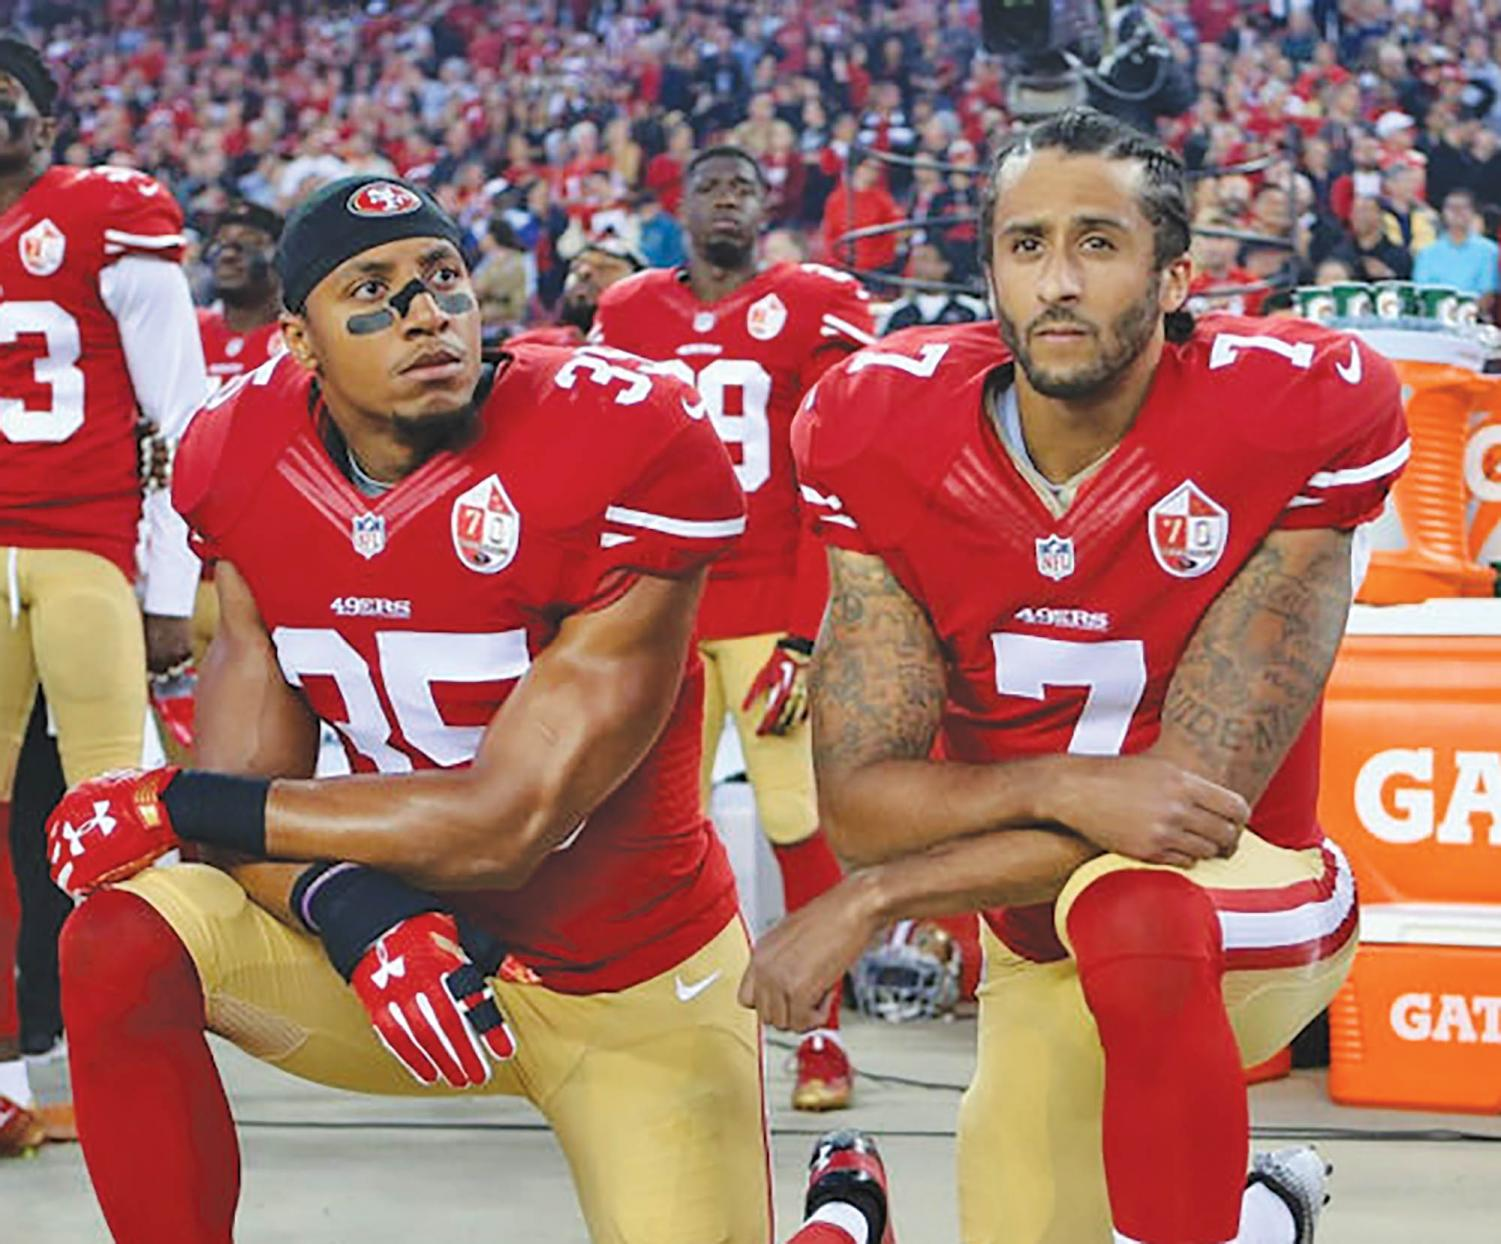 Eric Reed (left) and Colin Kaepernick (right) both make a bold statement by kneeling for National Anthem before an NFL game.